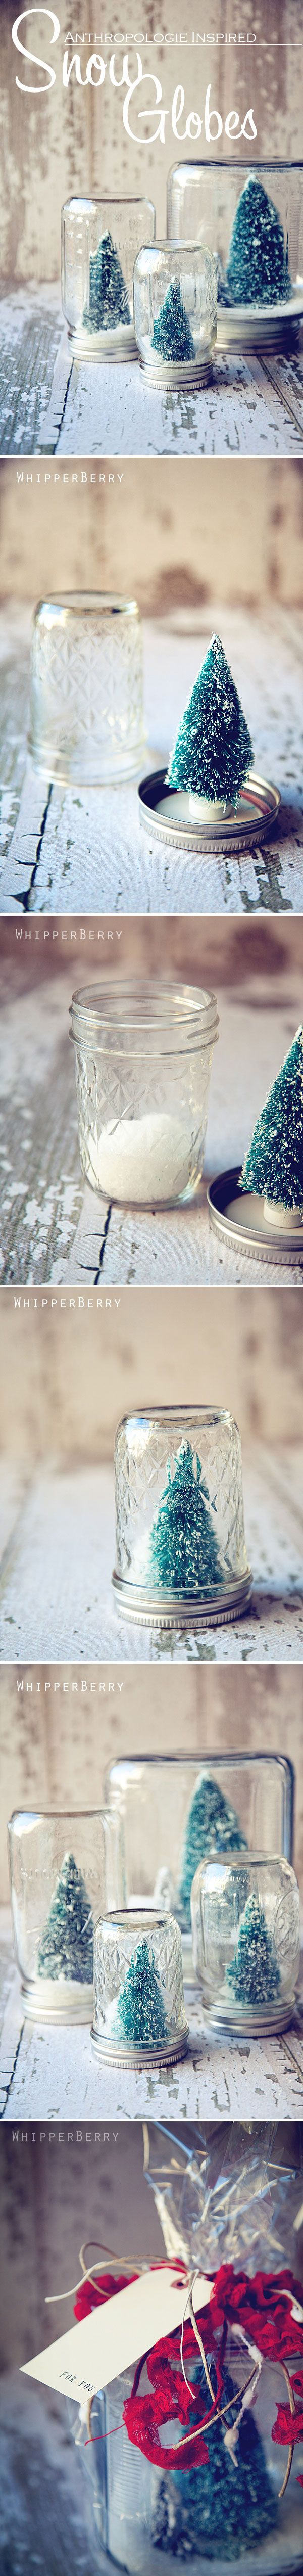 Anthropologie-Inspired Snow Globes Tutorial